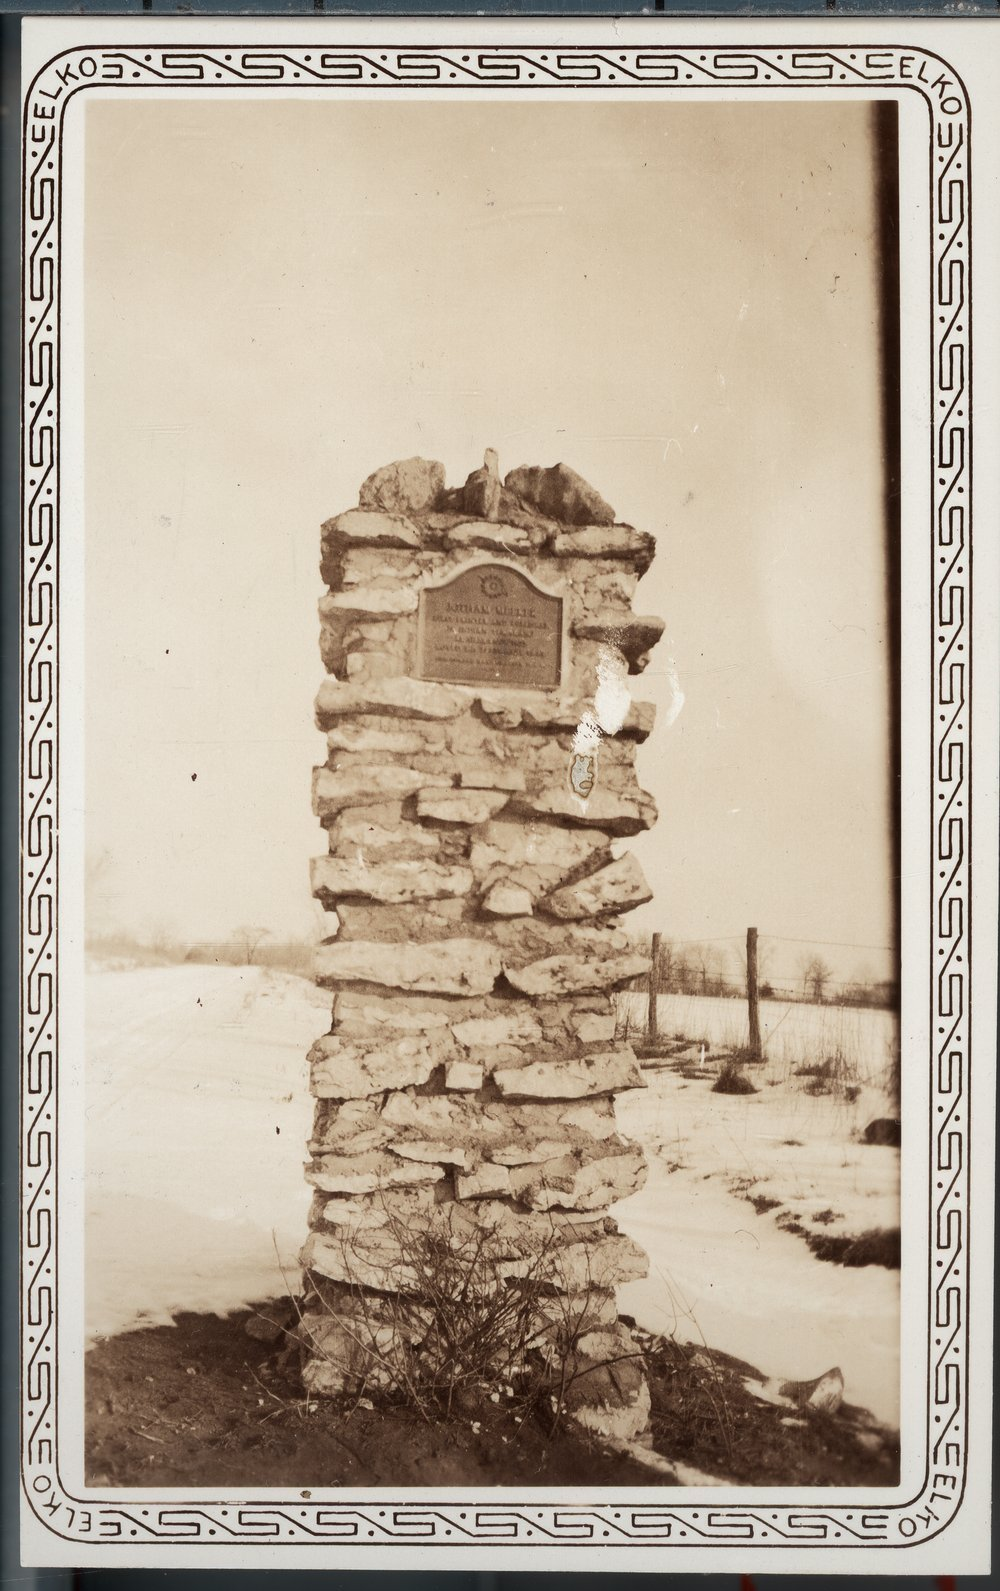 DAR markers at Ottawa Indian Burial Grounds, Kansas - Photograph #2 is of a single marker at the Indian Mission Burial Grounds.